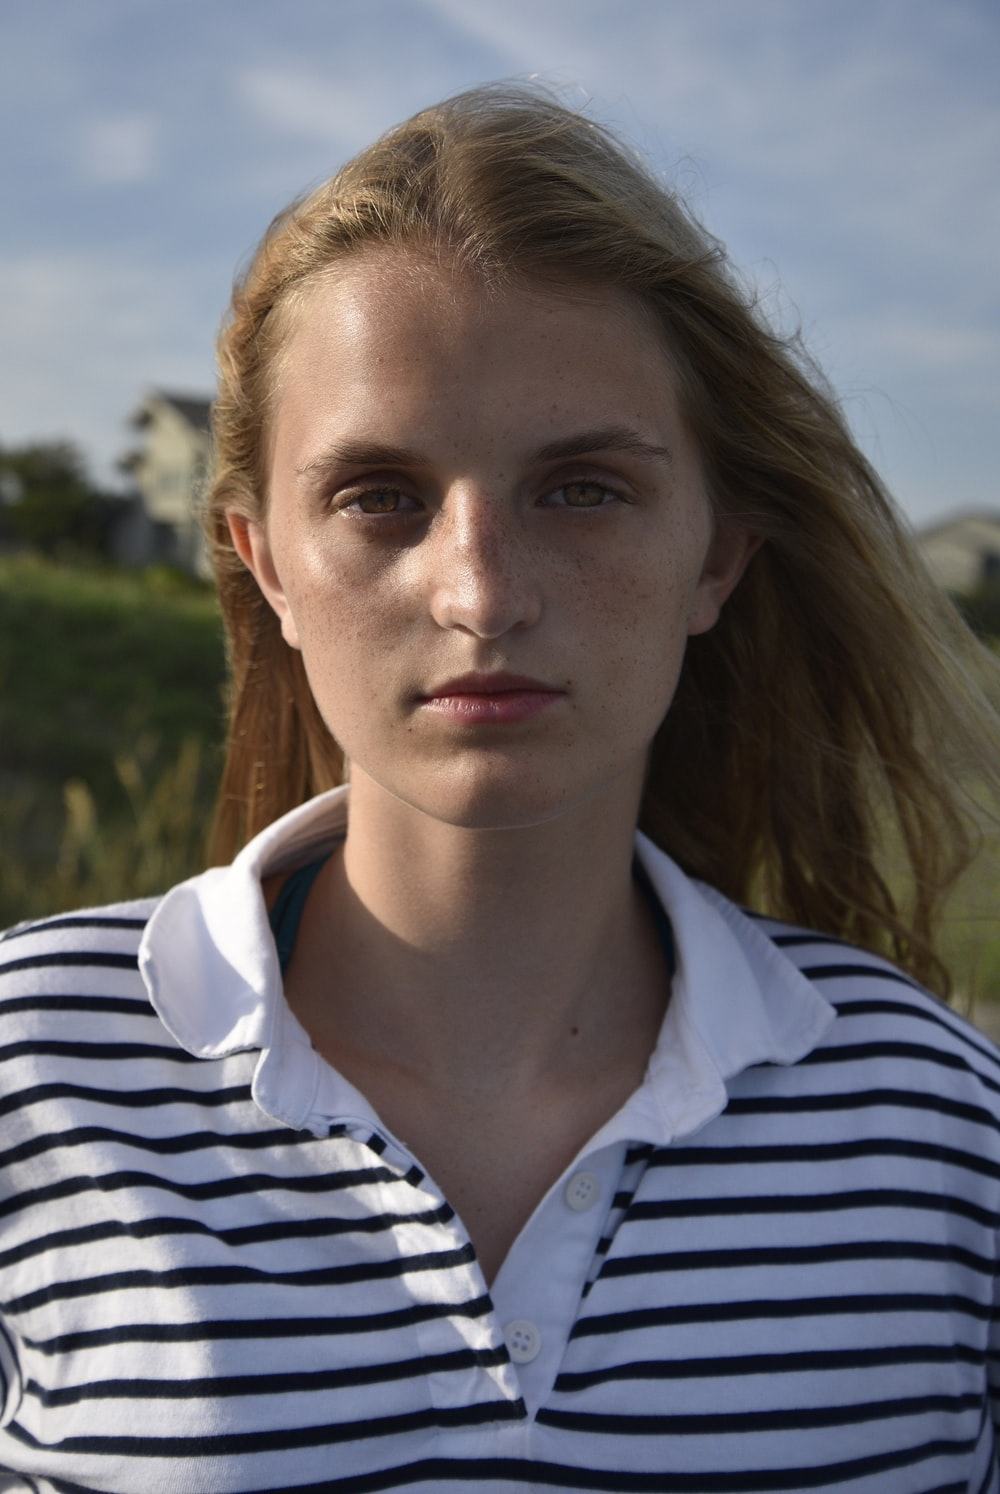 woman in black and white striped shirt